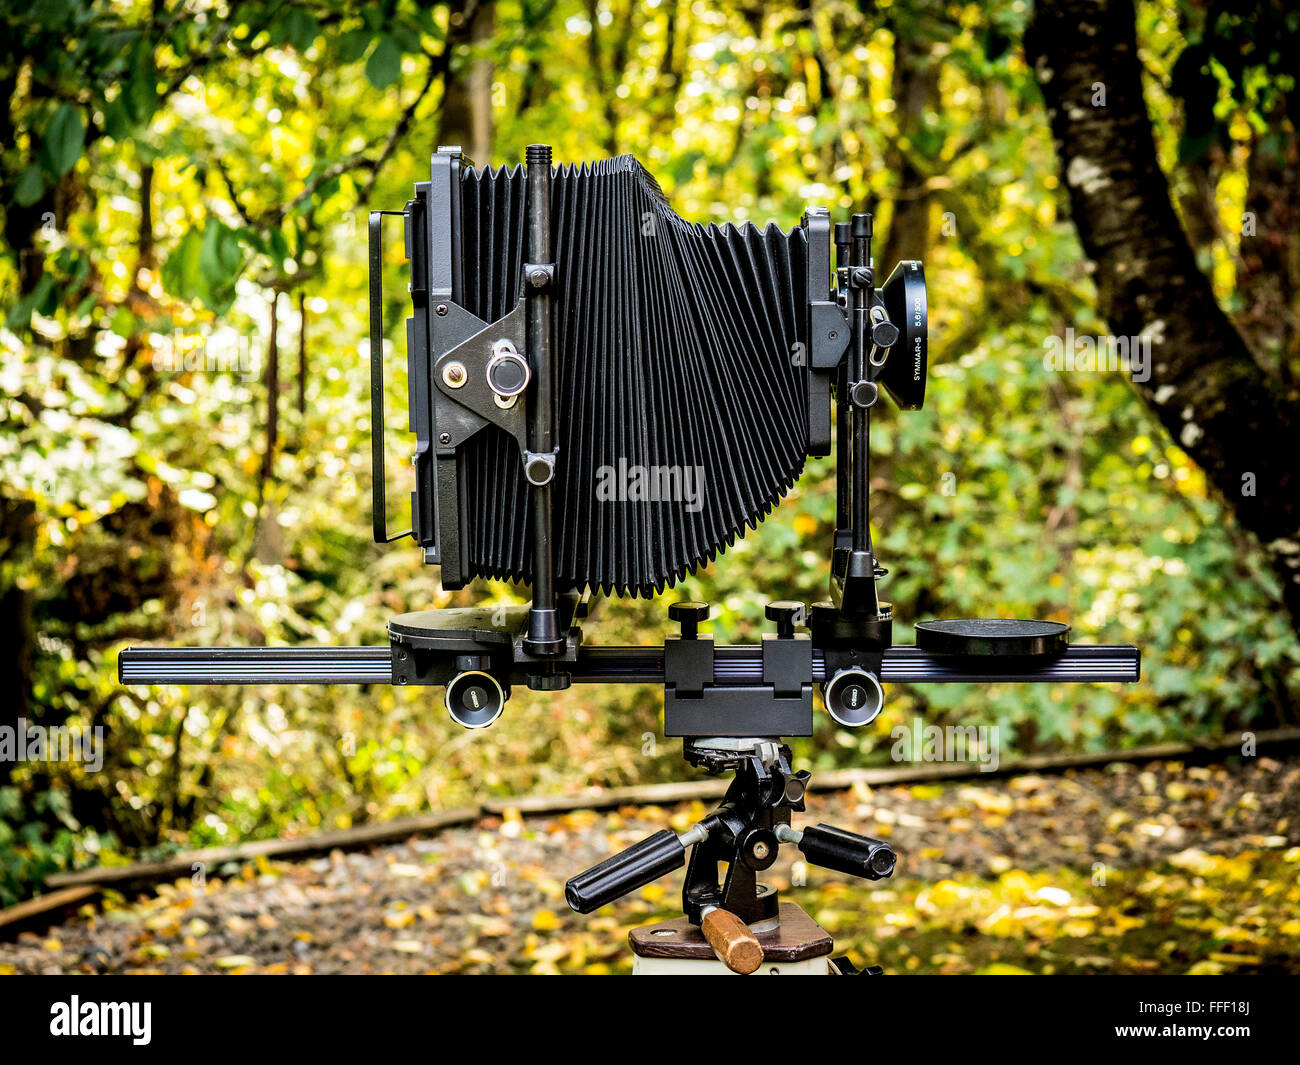 A large format view camera against a green nature background - Stock Image